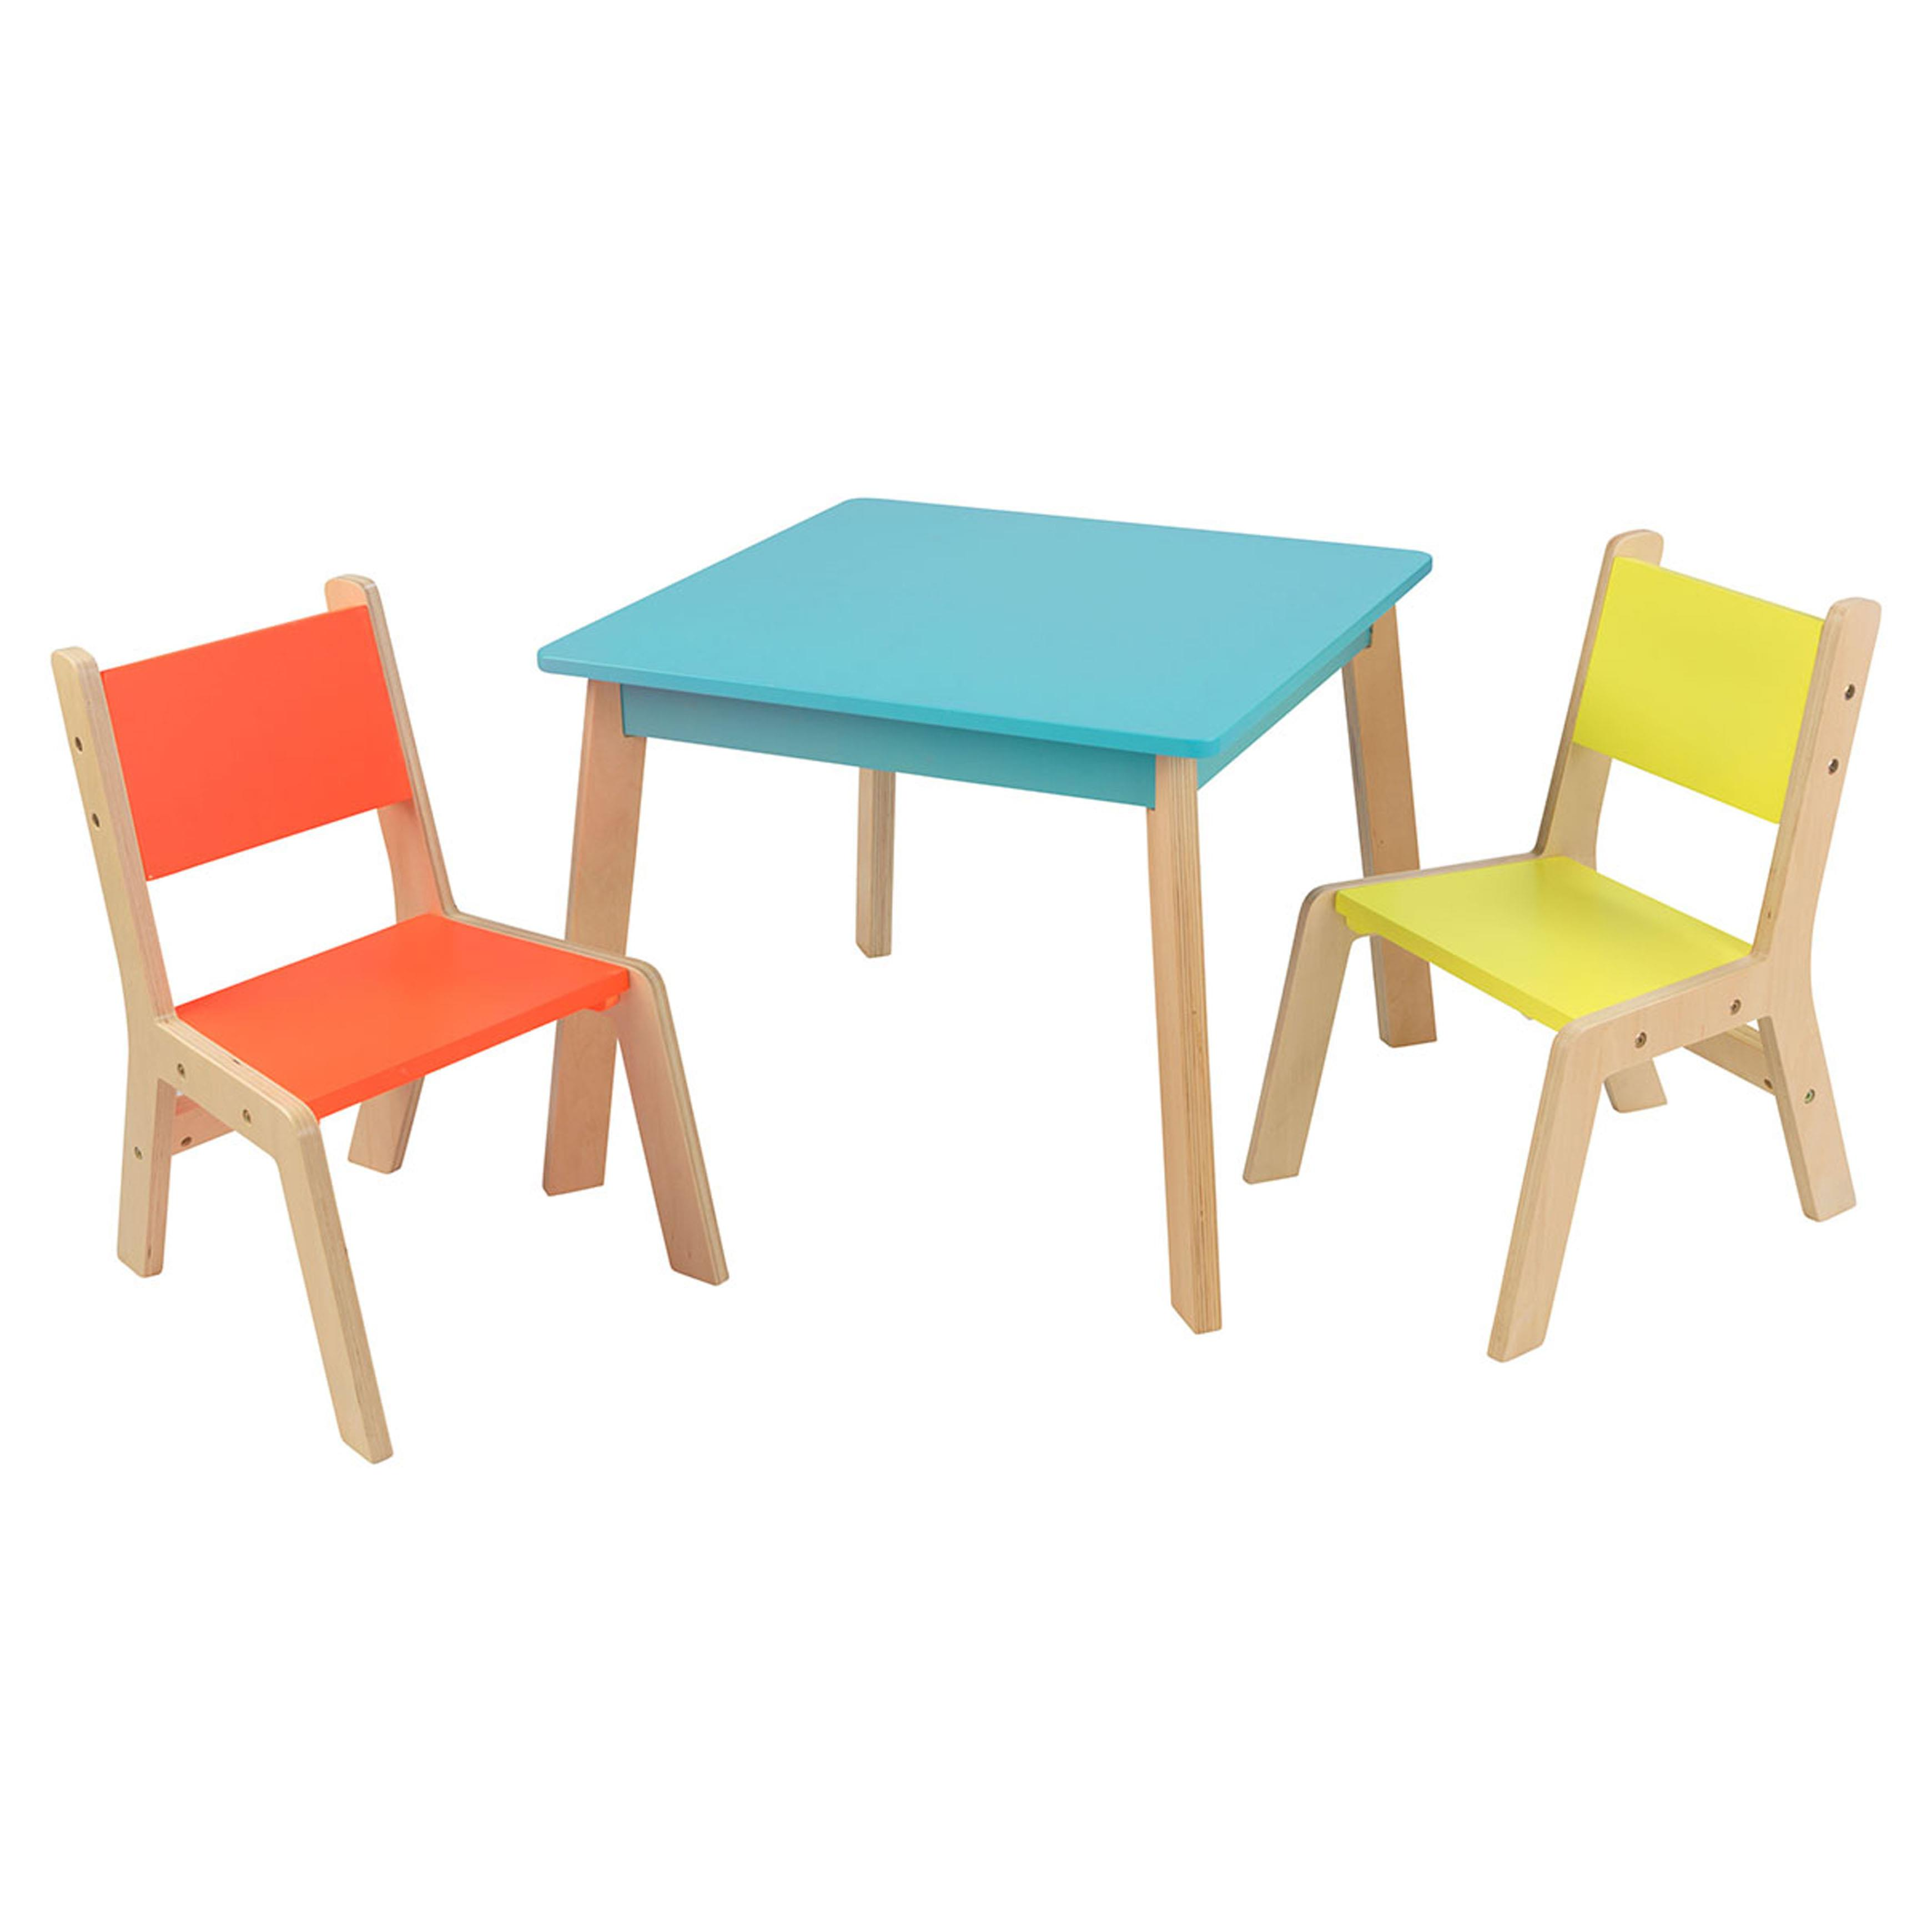 Chic $50-$100 wooden toddler table and chairs